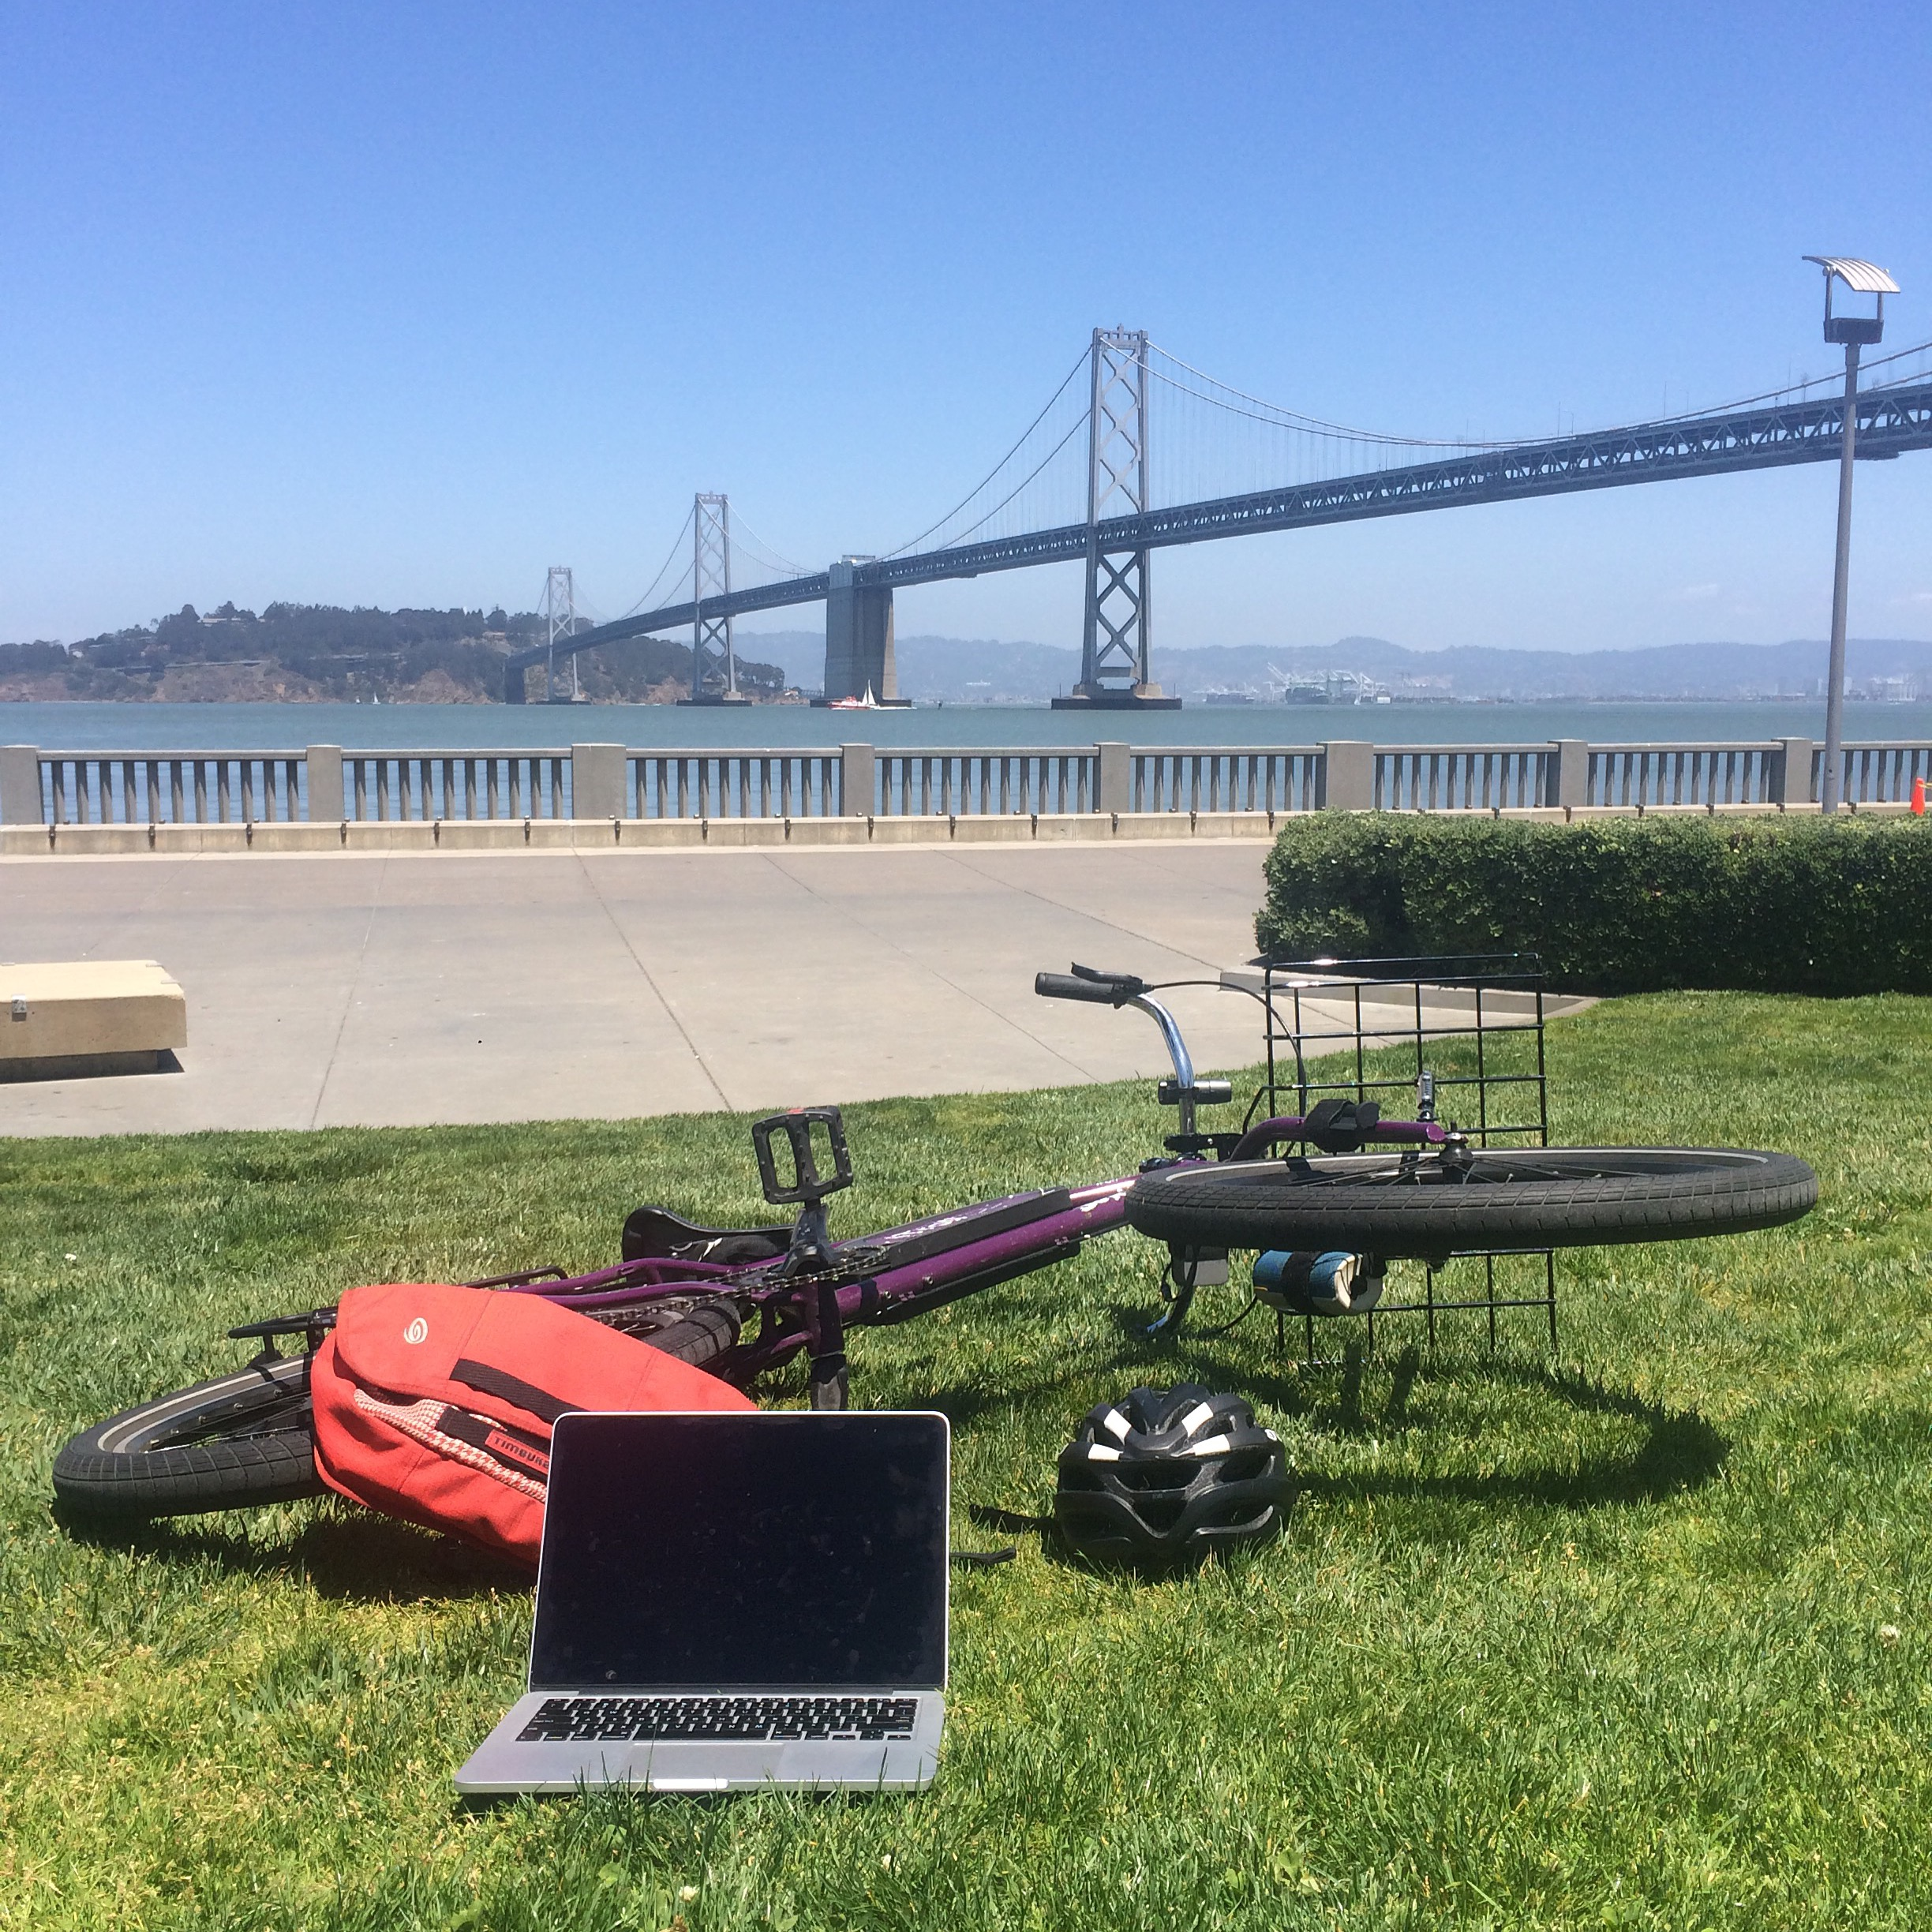 Mobile office day. For when it's sunny and you also have to work.